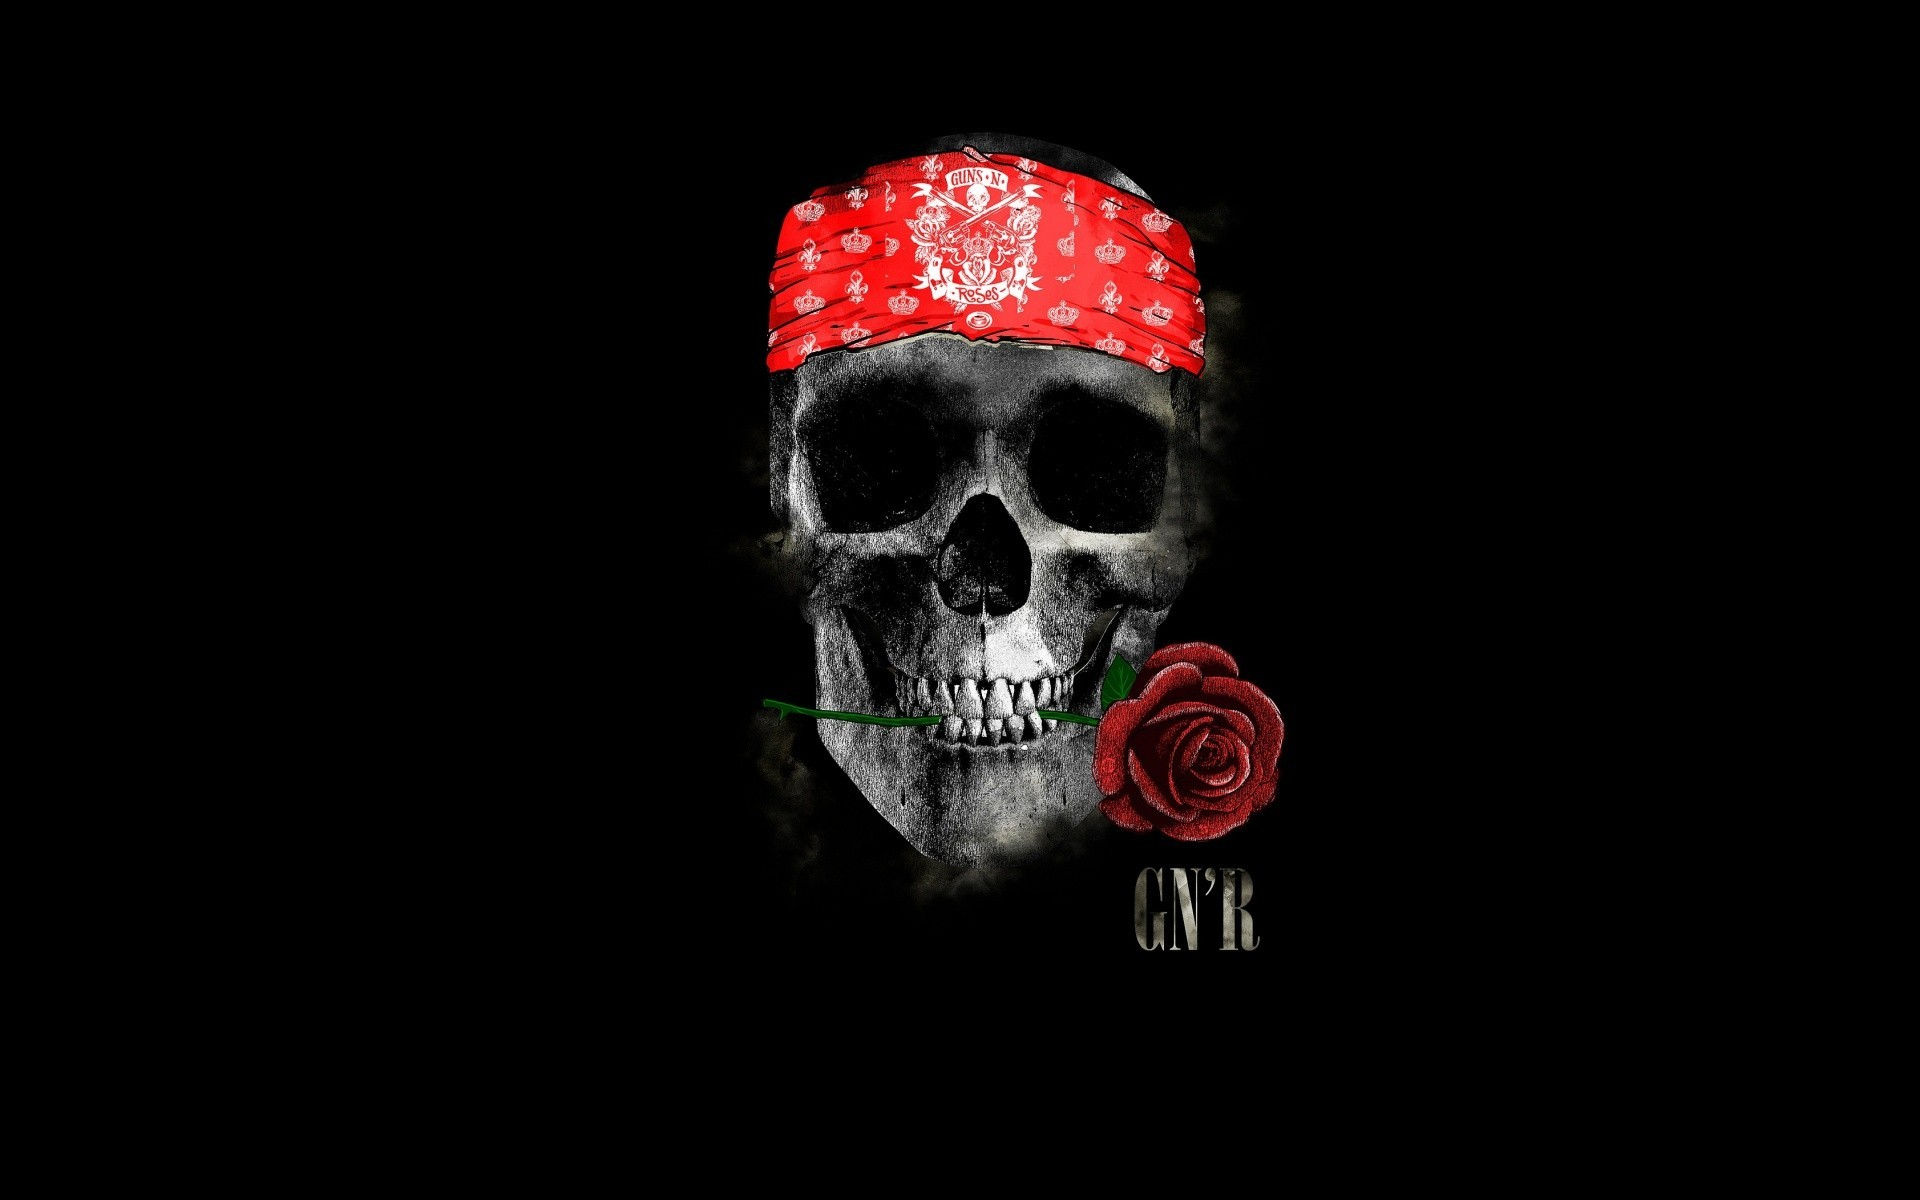 Sad Girl With Red Rose Wallpaper Gun N Roses Hd Artist 4k Wallpapers Images Backgrounds